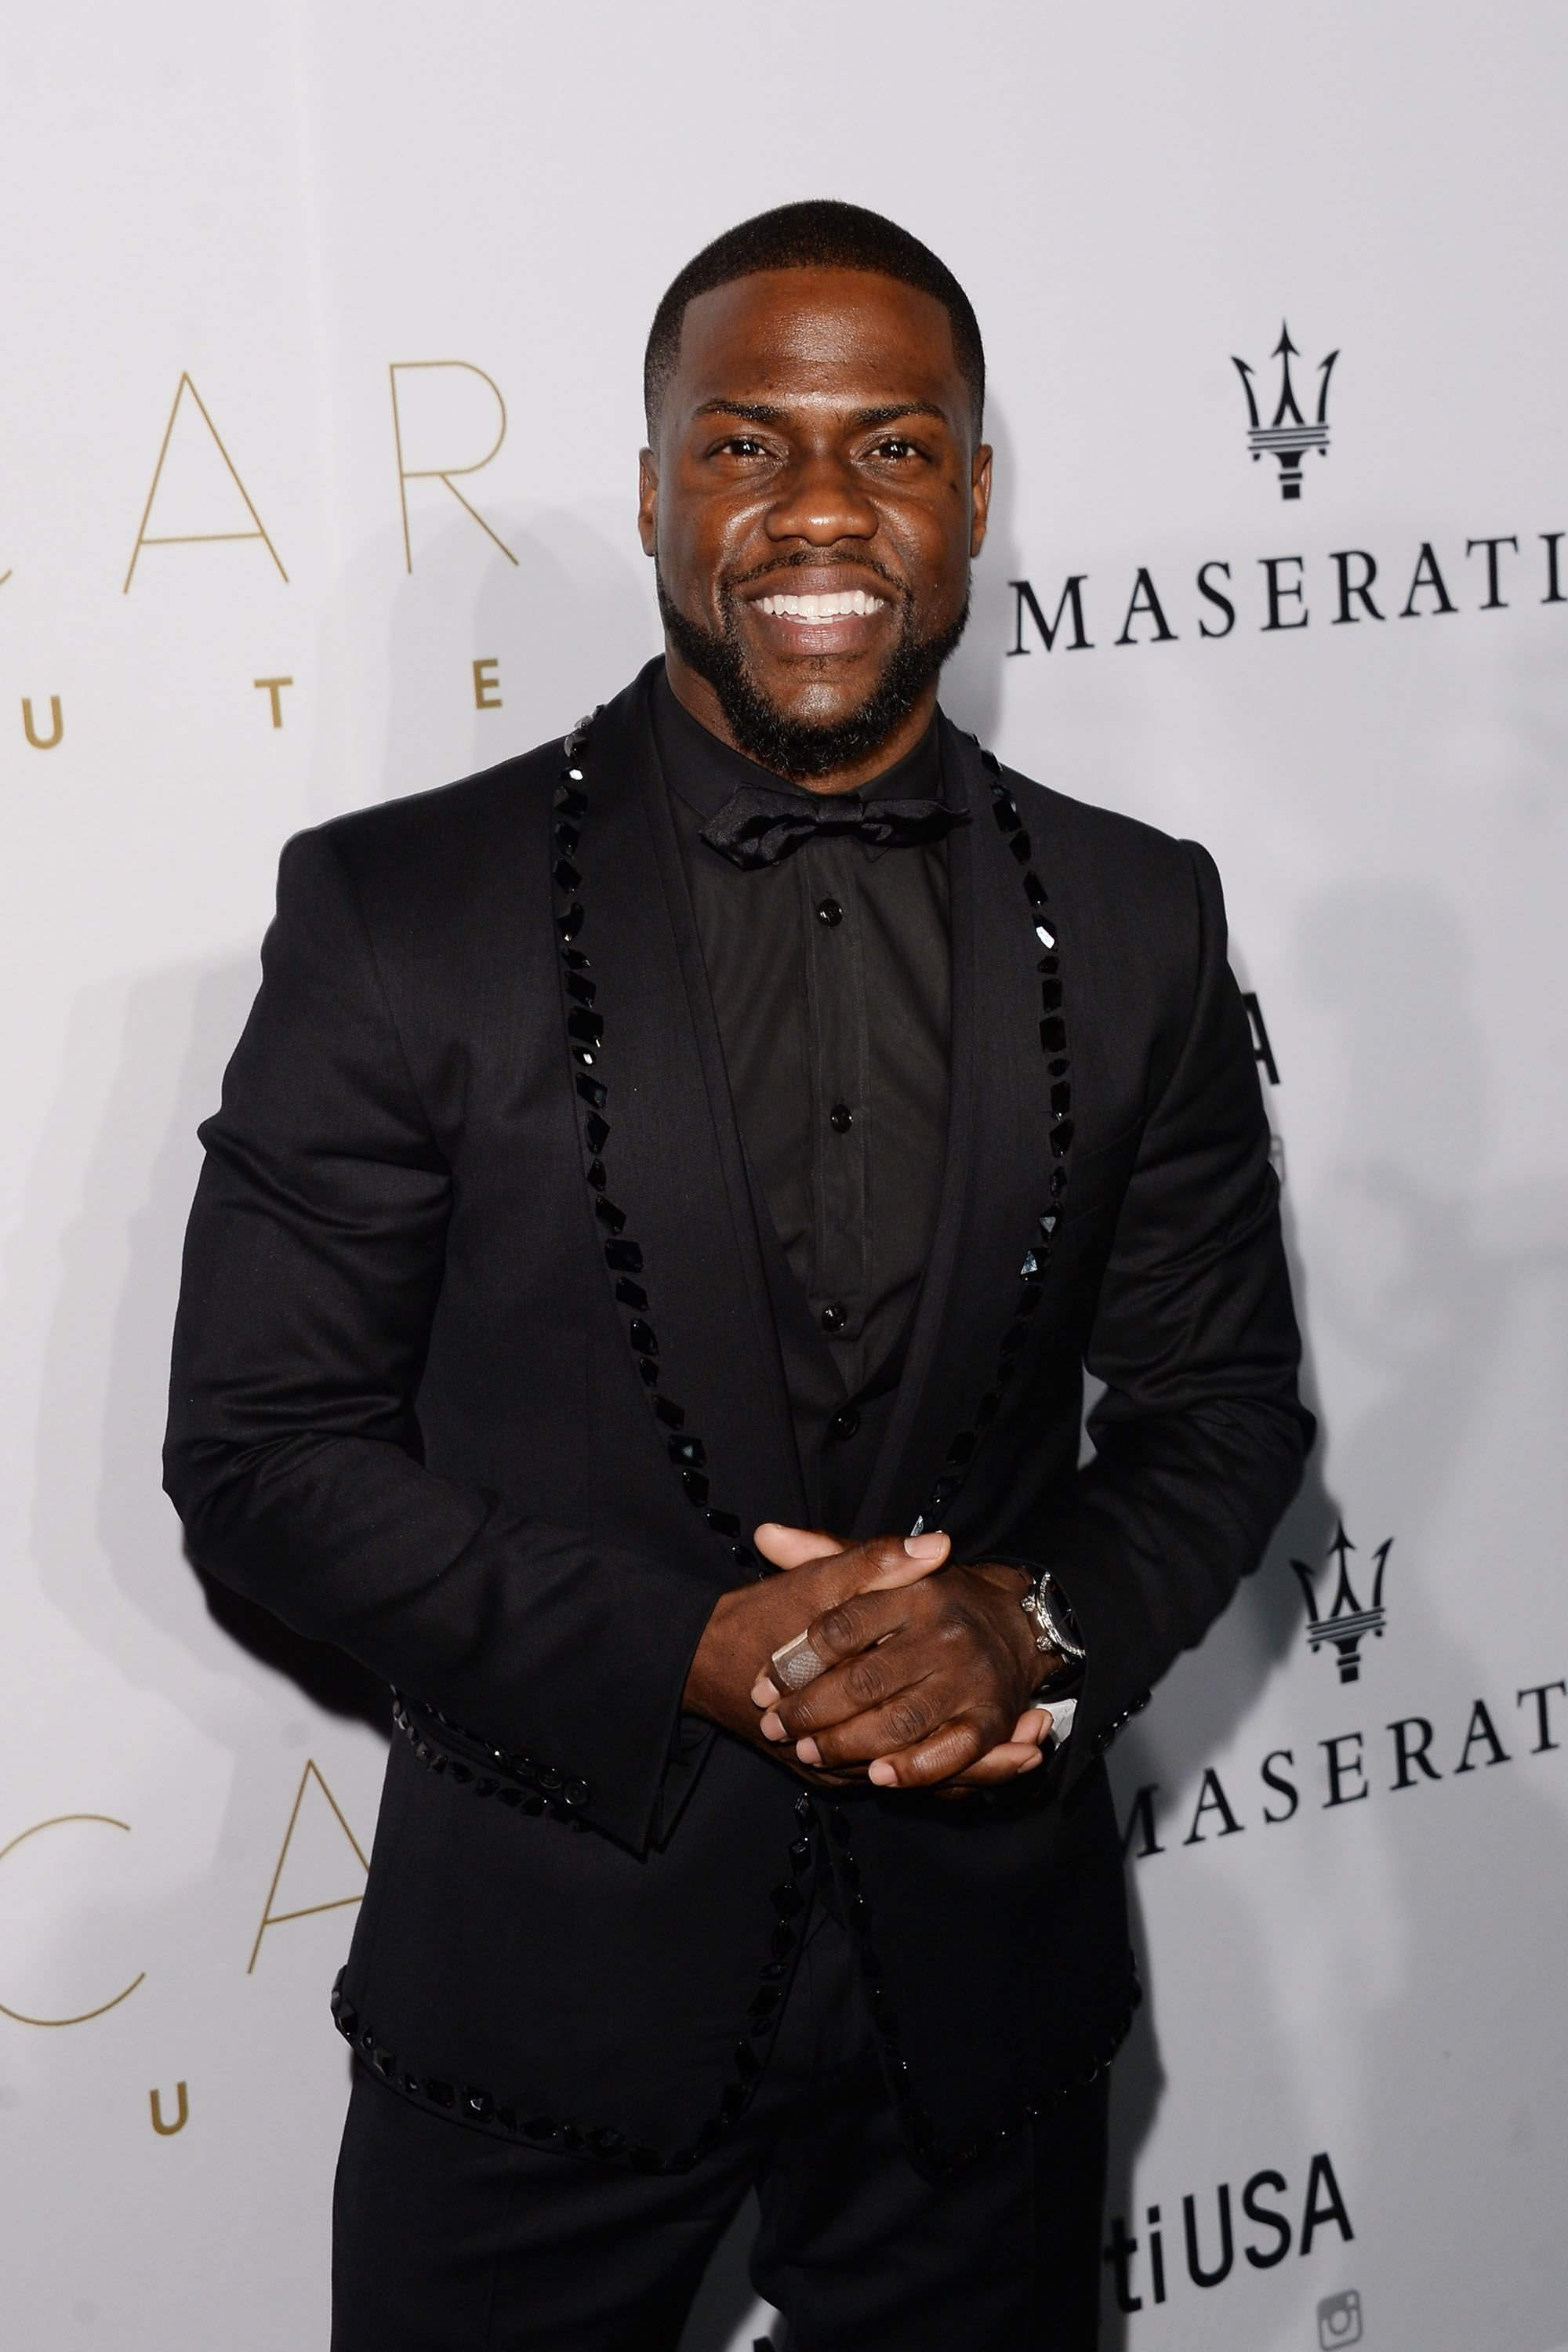 Kevin Hart at the 2016 Oscar Salute after-party at W Hollywood on February 28, 2016 in Hollywood, California.   Source: Getty Images